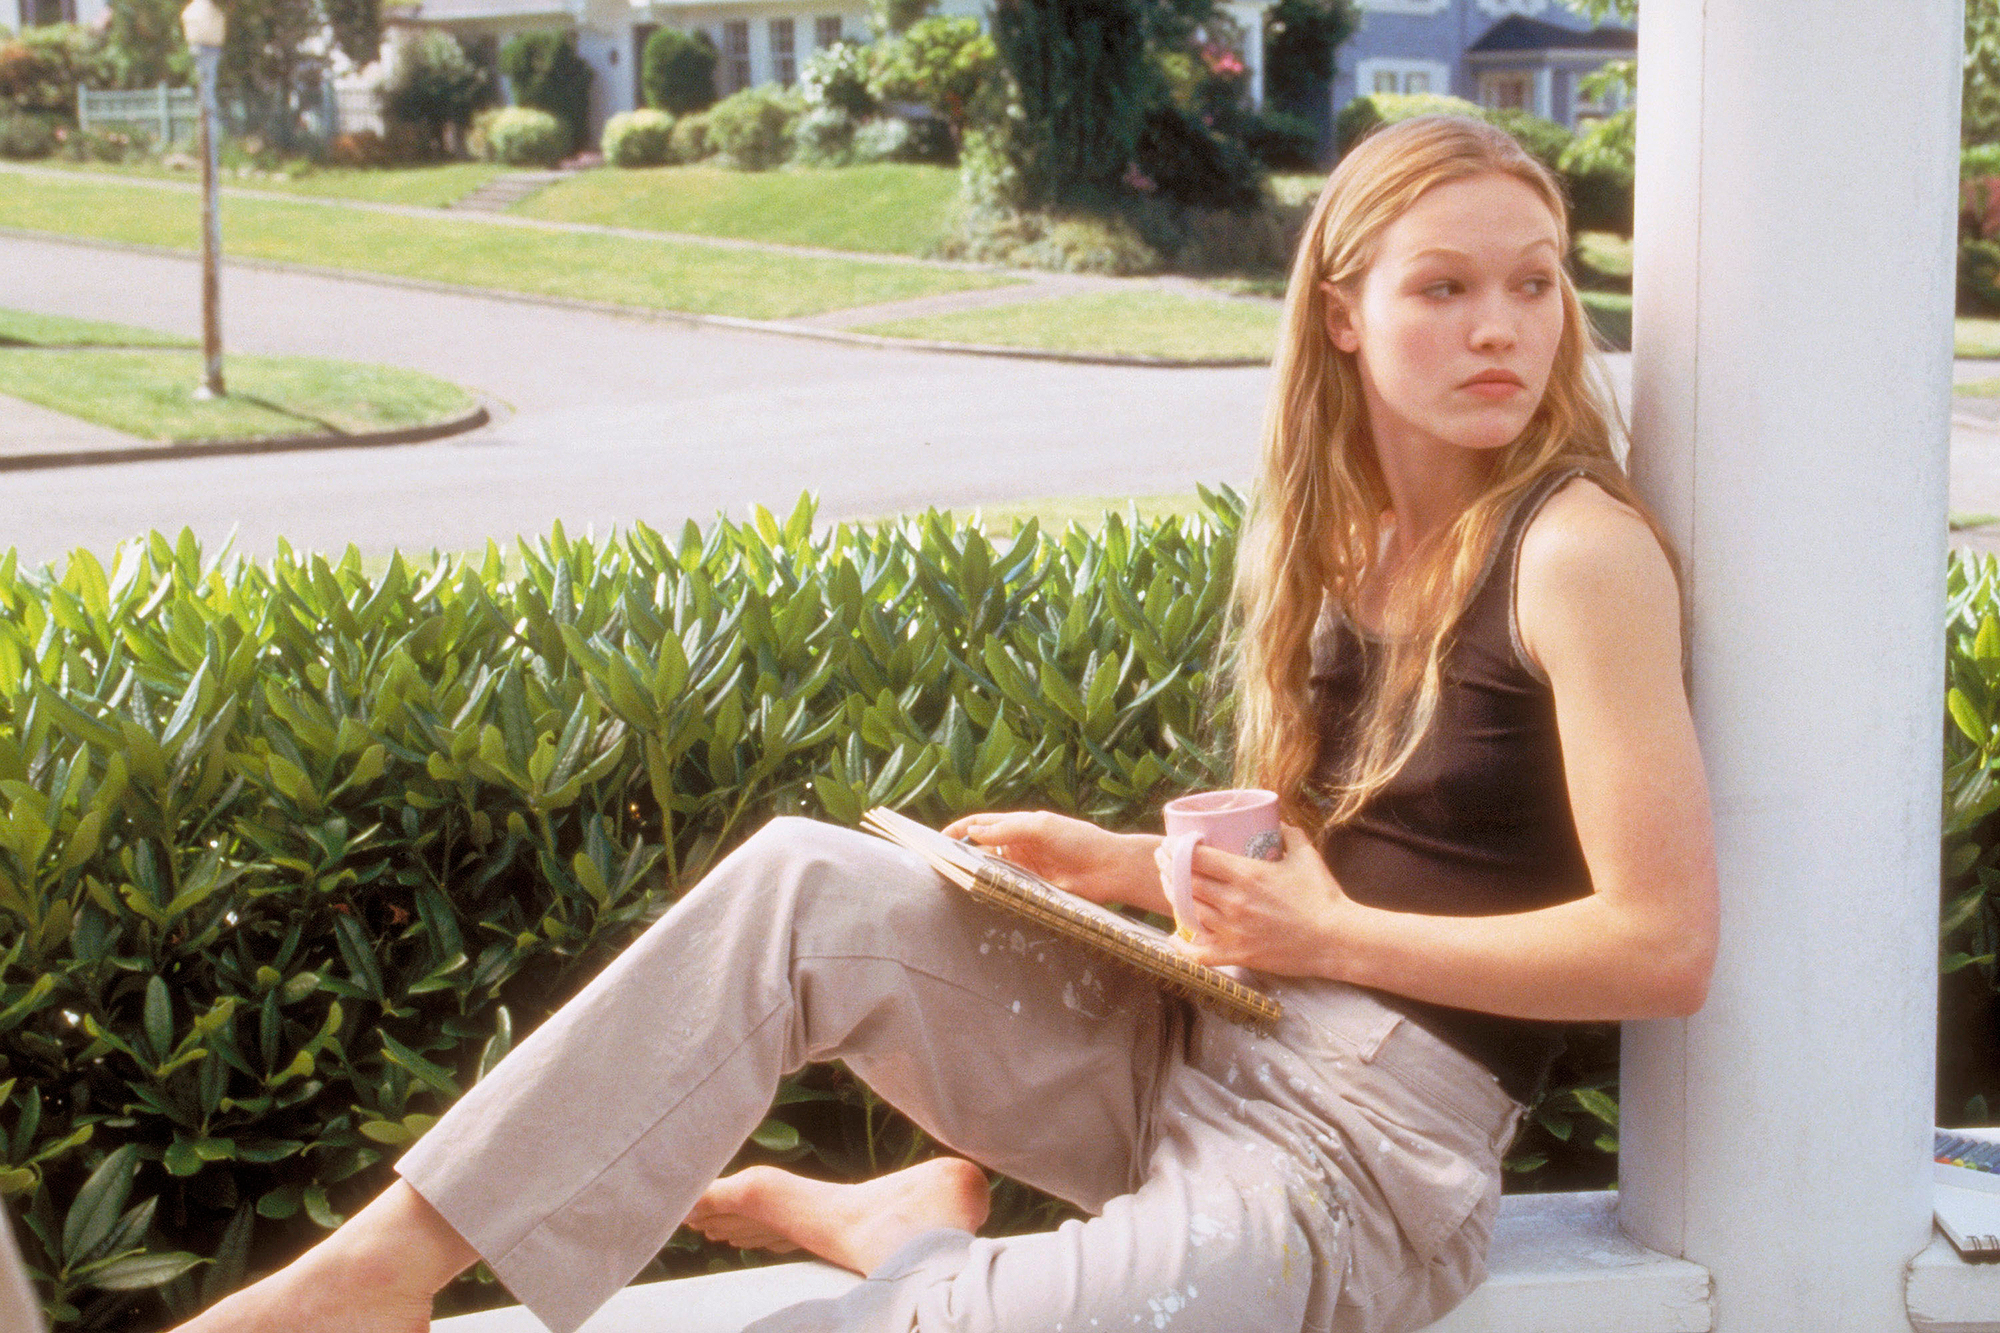 It's Just Too Good to Be True! The 10 Things I Hate About You House Is for Sale for $1.6 Million